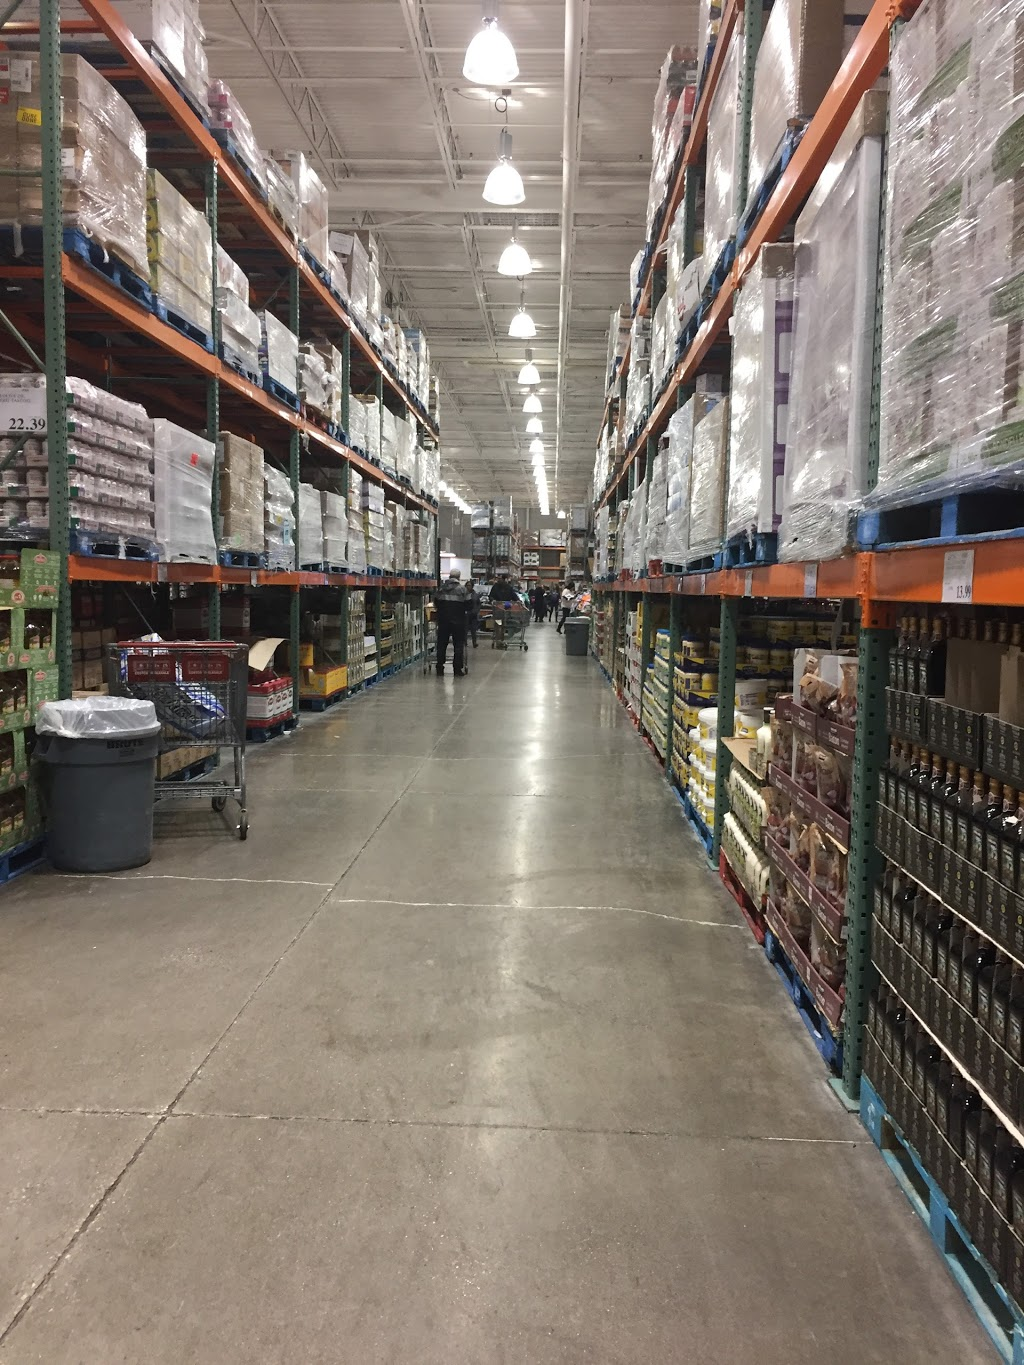 Costco Wholesale | department store | 1411 Warden Ave, Scarborough, ON M1R 2S3, Canada | 4162880033 OR +1 416-288-0033